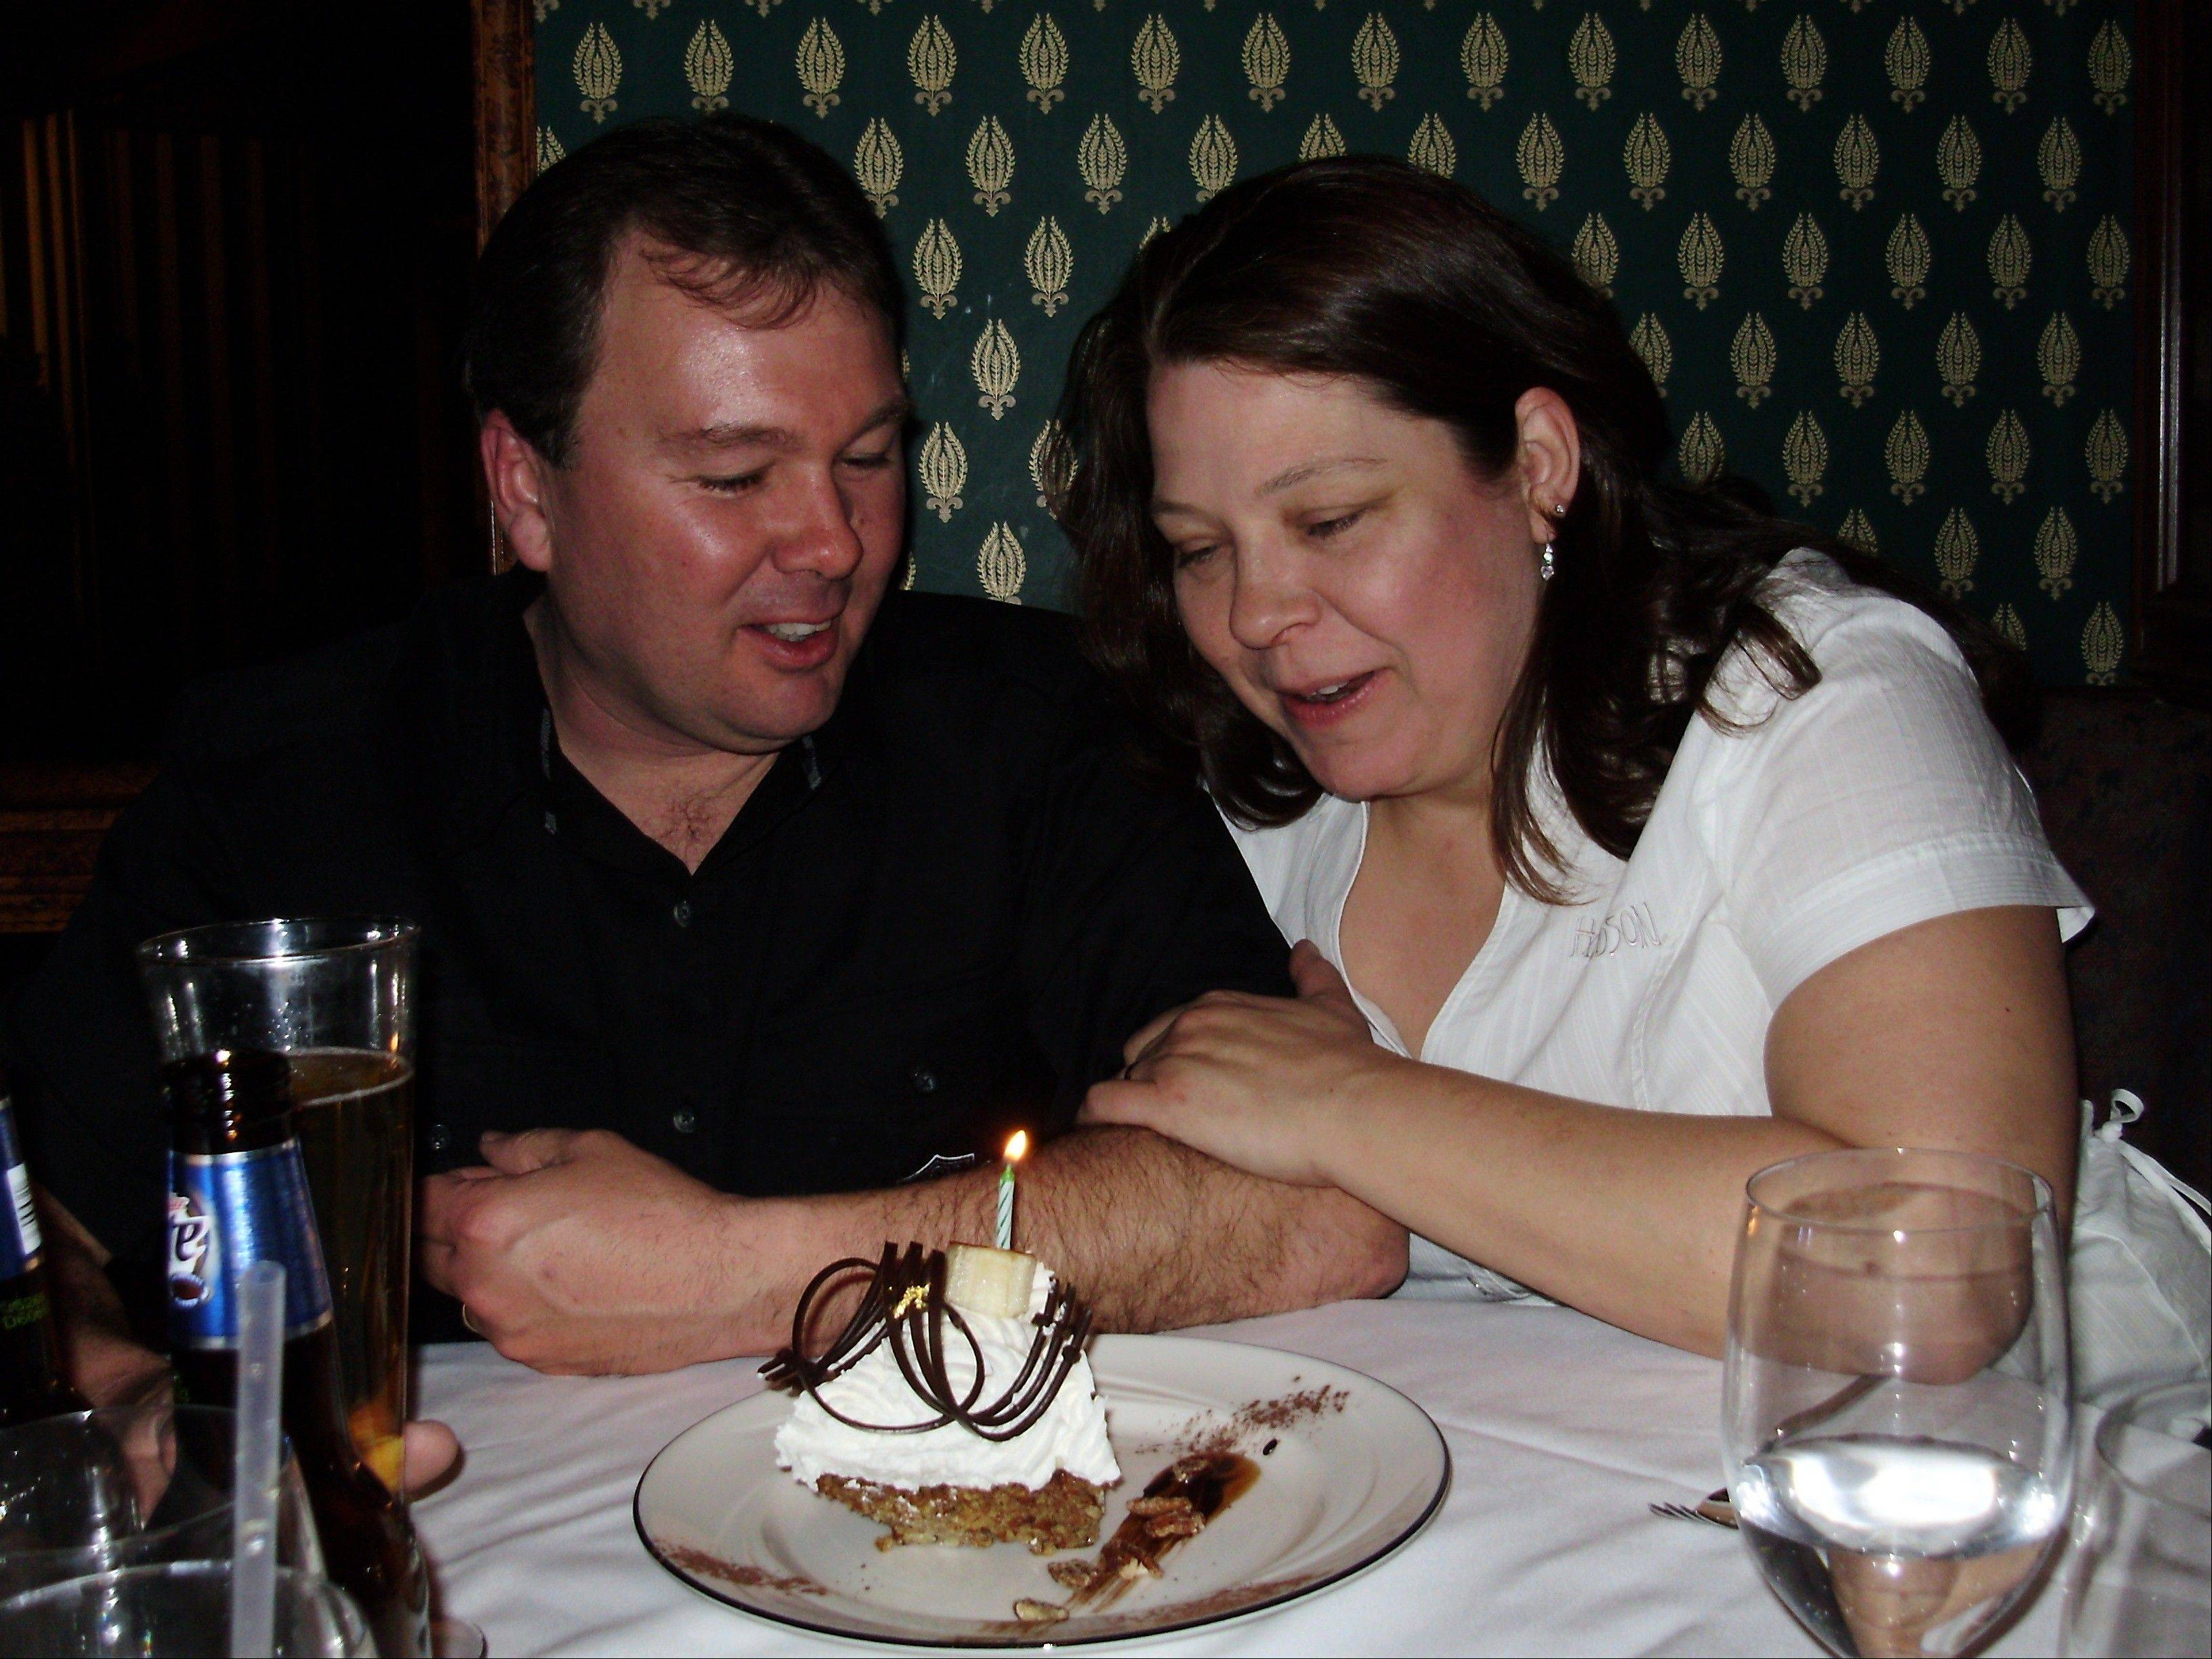 Wade and Denise Thomas of St. Charles were killed in a motorcycle crash May 23, 2009 in Elburn. The couple was married March 18, 2008.